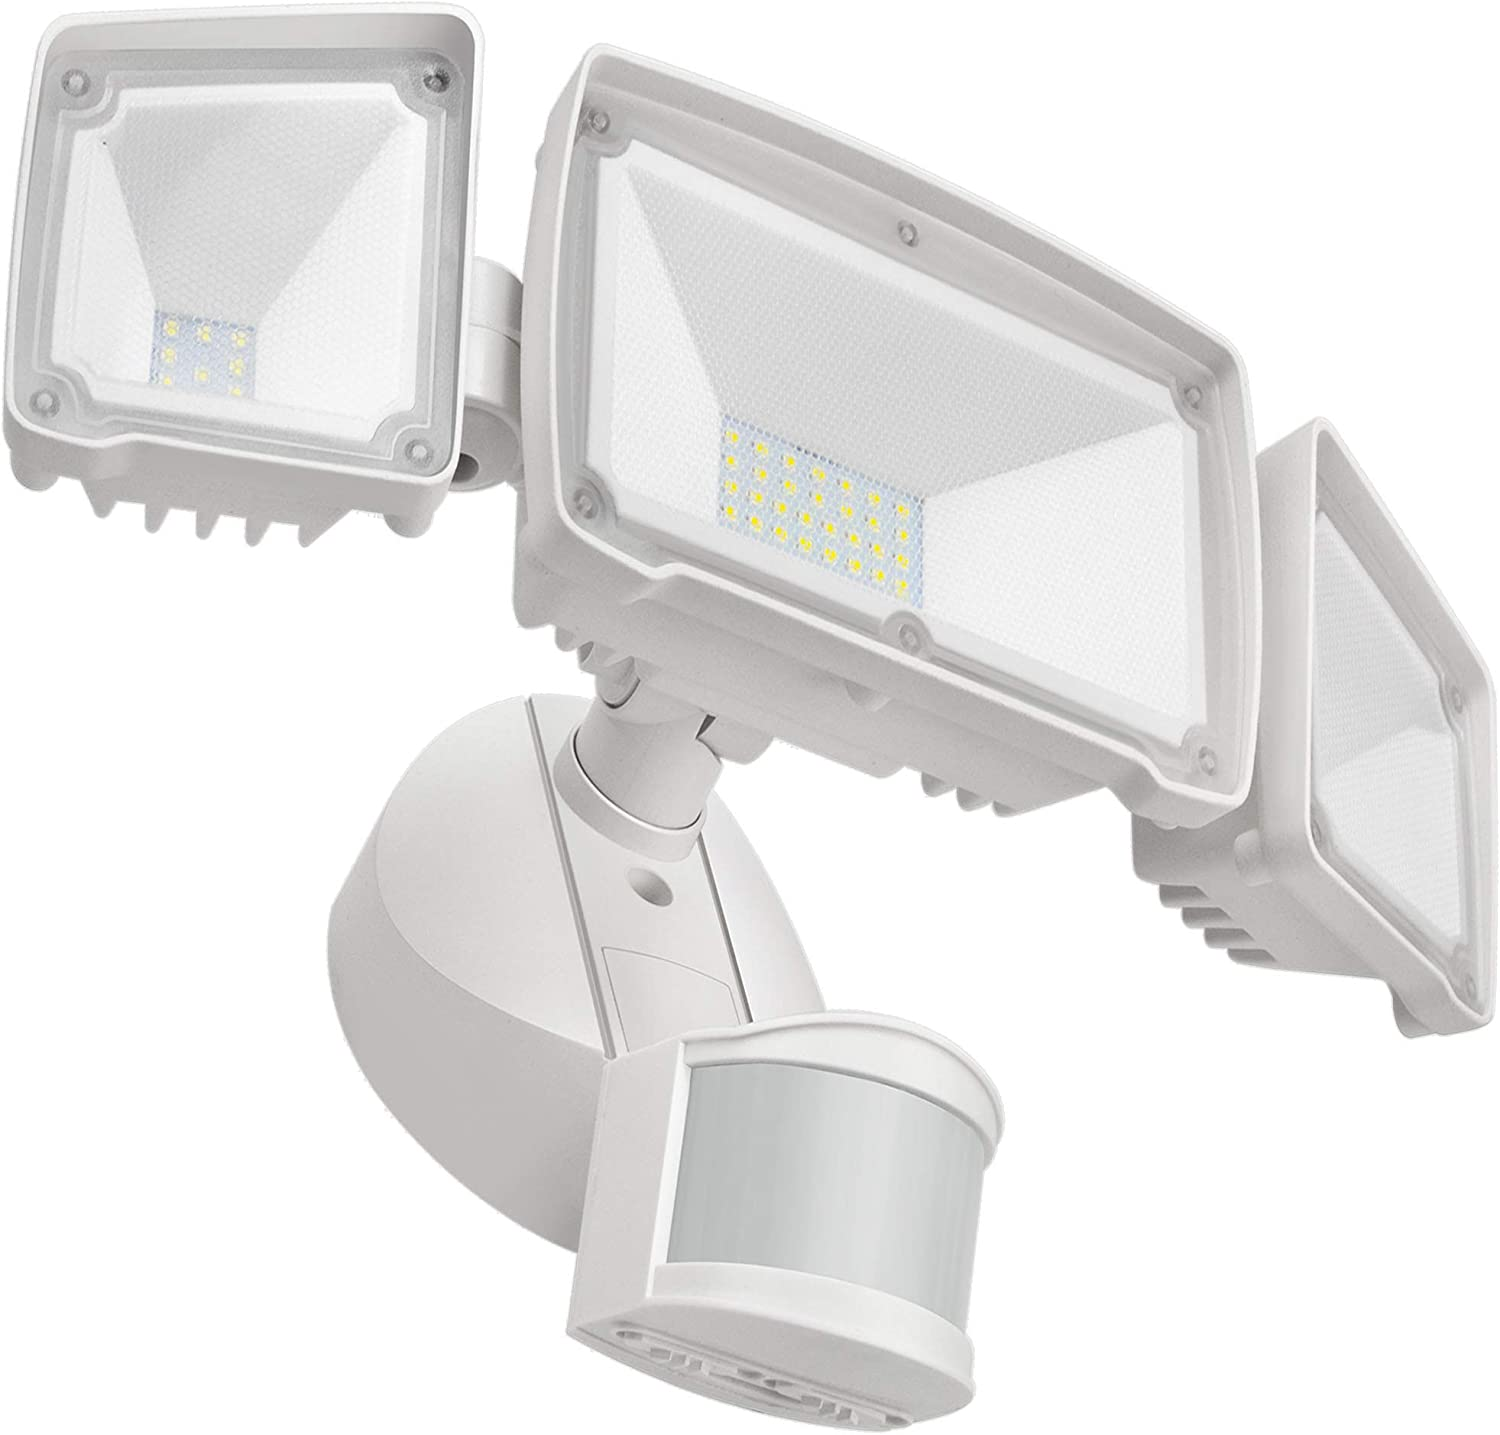 Flood Lights Outdoor Motion Sensor with 3 Adjustable Heads, AOBISI Motion Detected Wired Security LED Light, 4000LM 6000K IP65 Waterproof, ETL Certificated Light for Garage, Yard, Entryways, NOT SOLAR